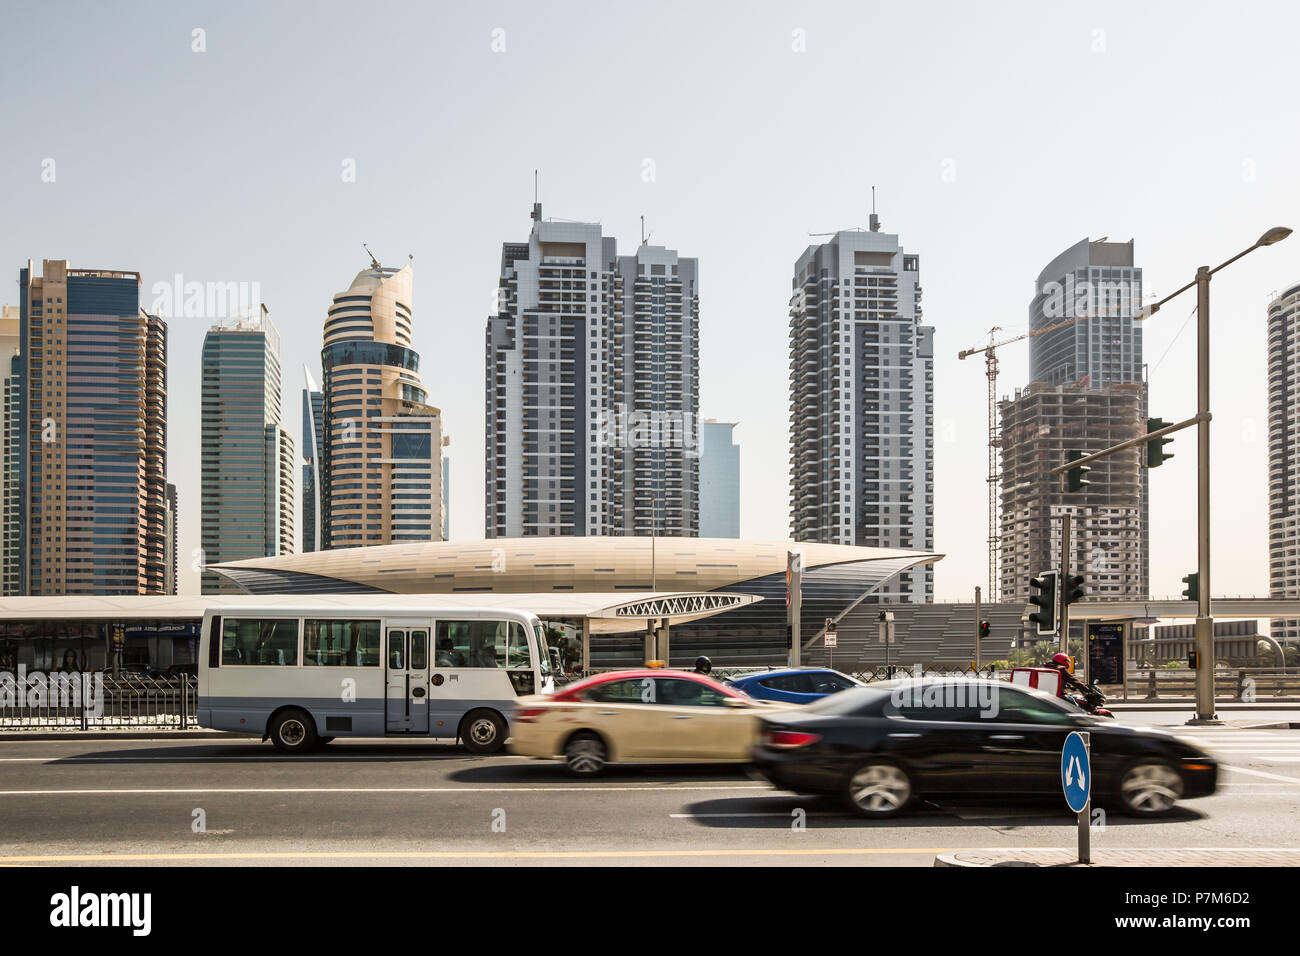 Cars on the street in front of futuristic building of Dubai metro station and modern skyscrapers in Dubai, United Arab Emirates - Stock Image